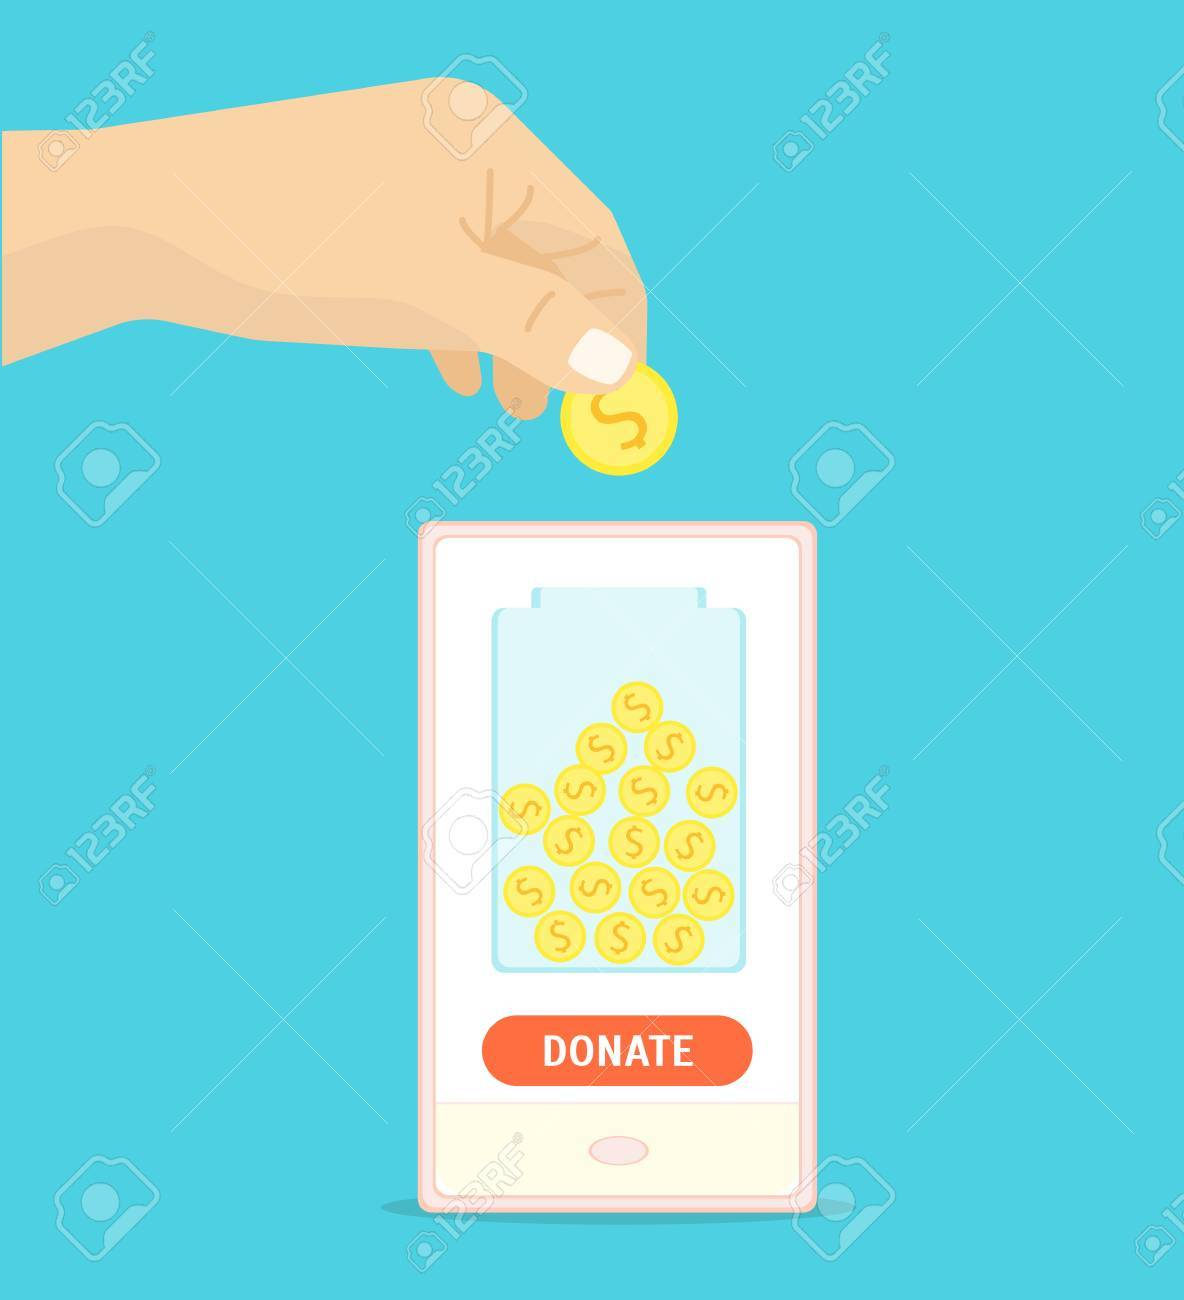 Donation Gold Coin in a Box Concept. Flat Design Style. Vector illustration Stock Vector  sc 1 st  123RF Stock Photos & Donation Gold Coin In A Box Concept. Flat Design Style. Vector ... Aboutintivar.Com